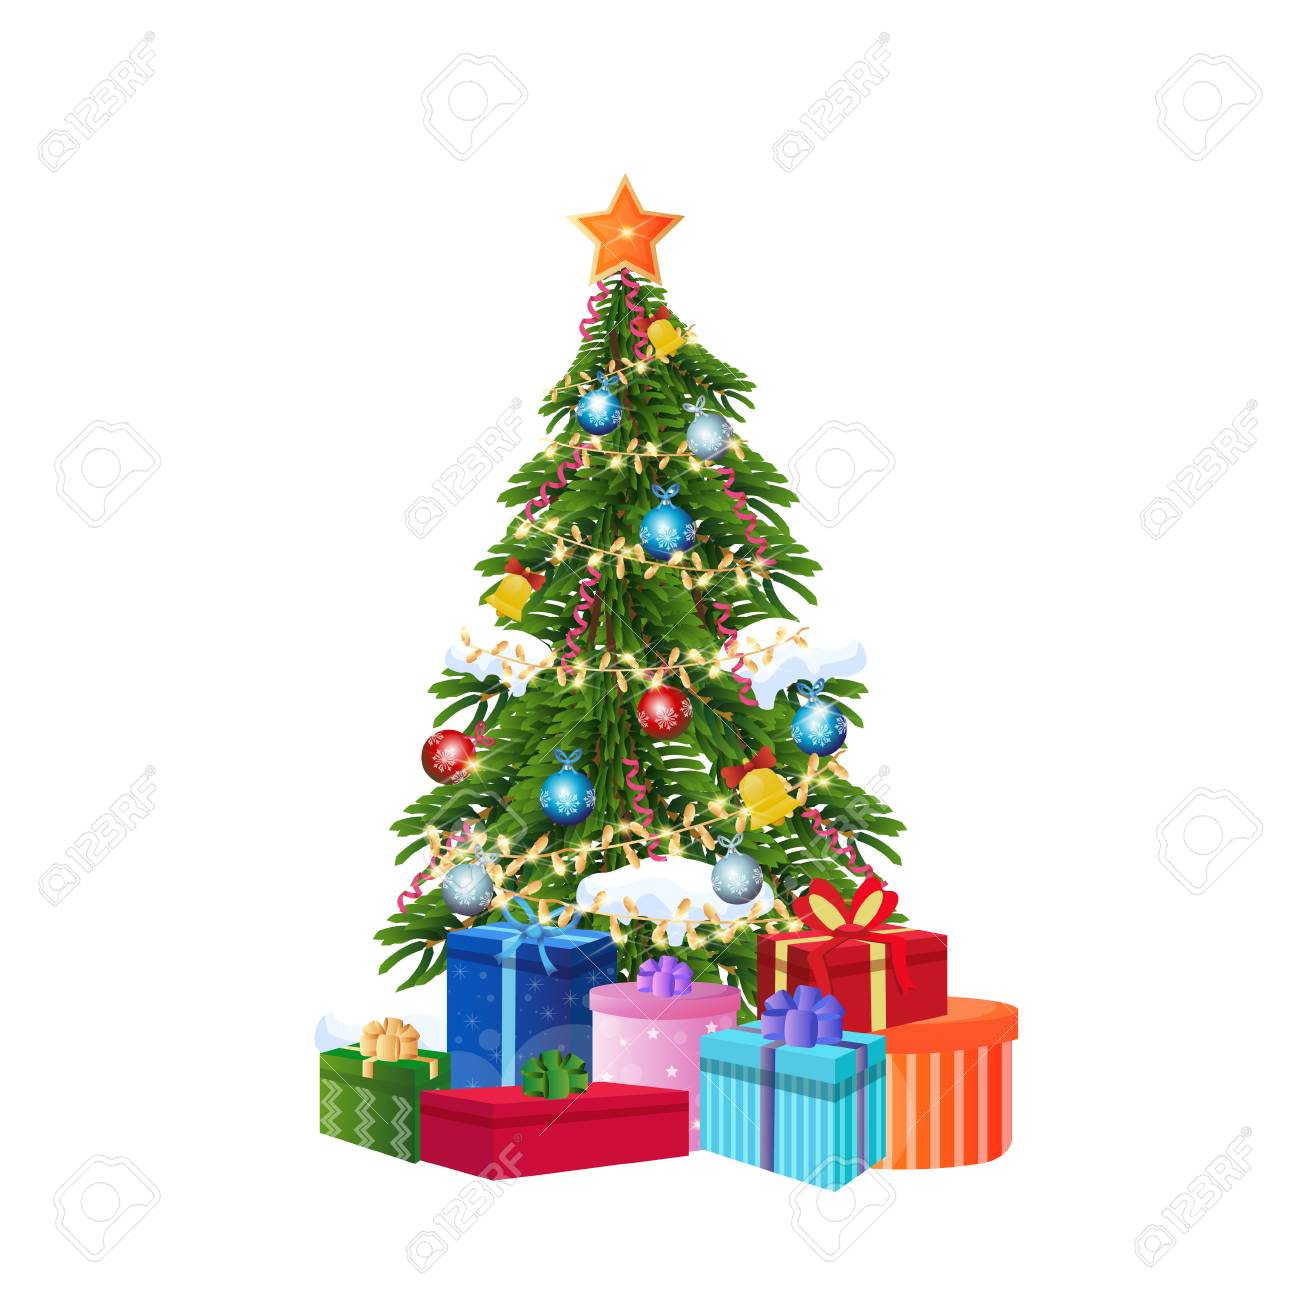 decorated gift box new year christmas tree concept isolated flat vector illustration - 128441967